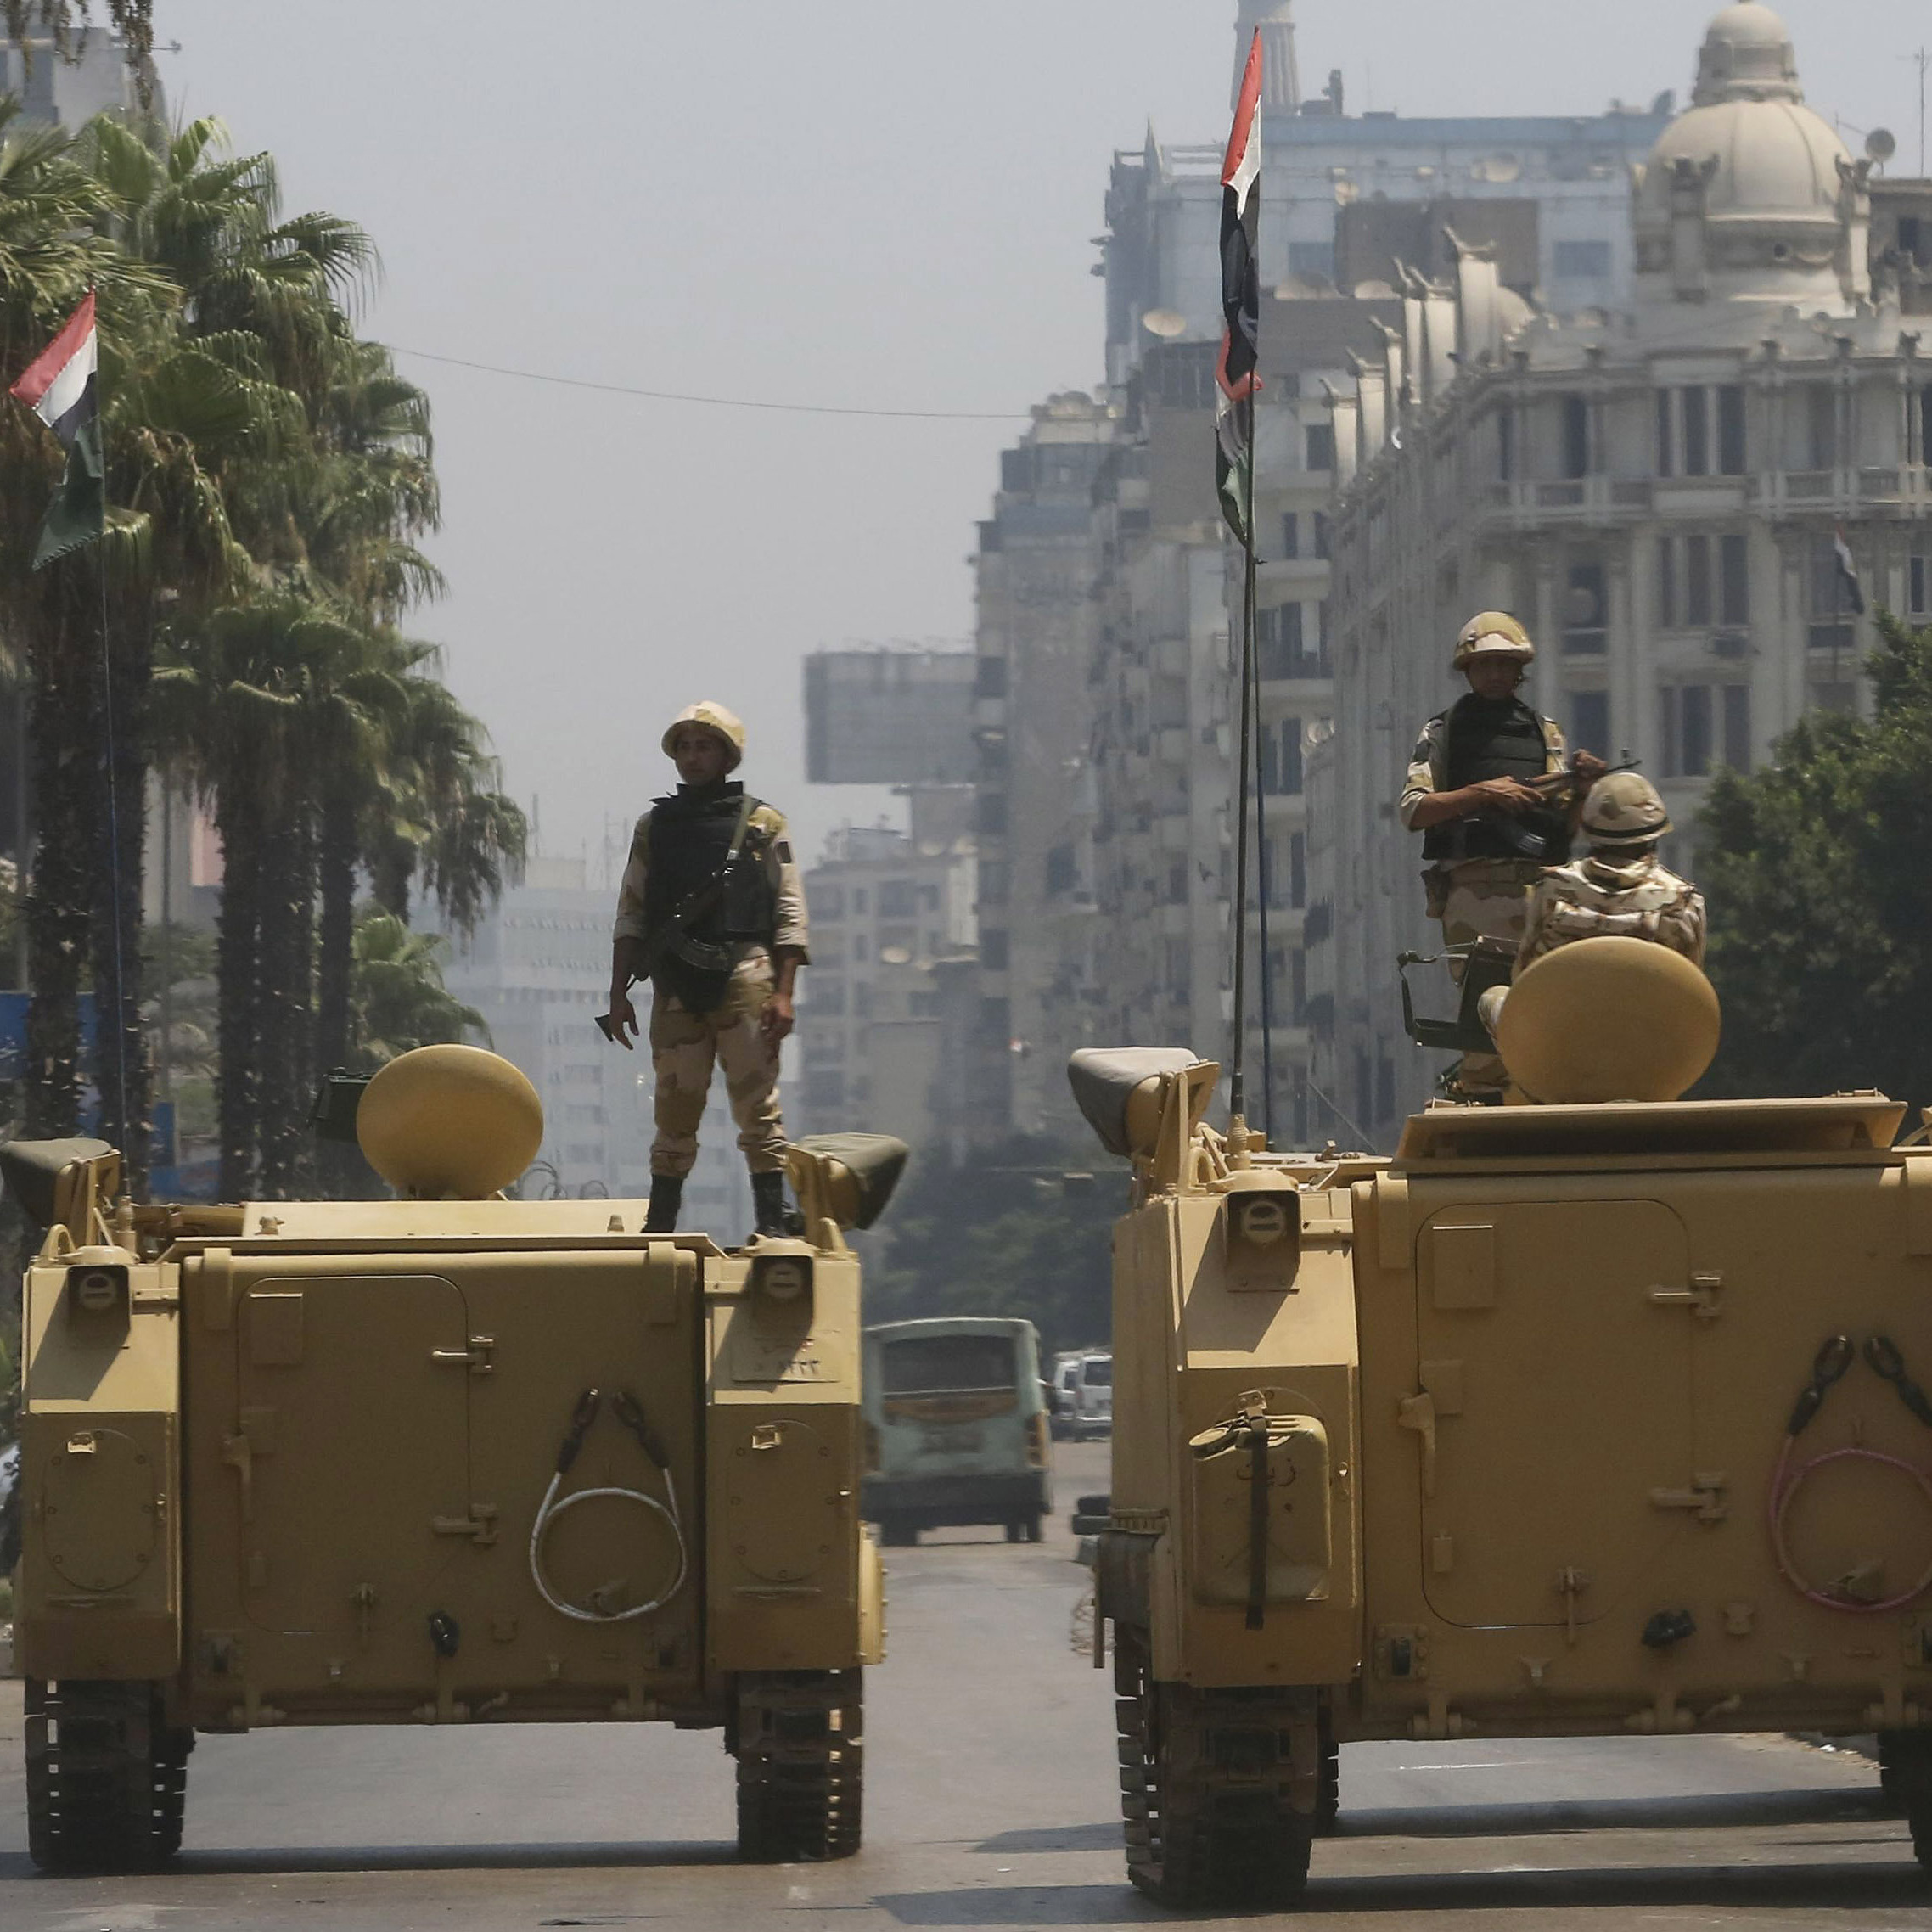 Soldiers stood atop armored personnel carriers outside the state-run television station in Cairo early on Friday.